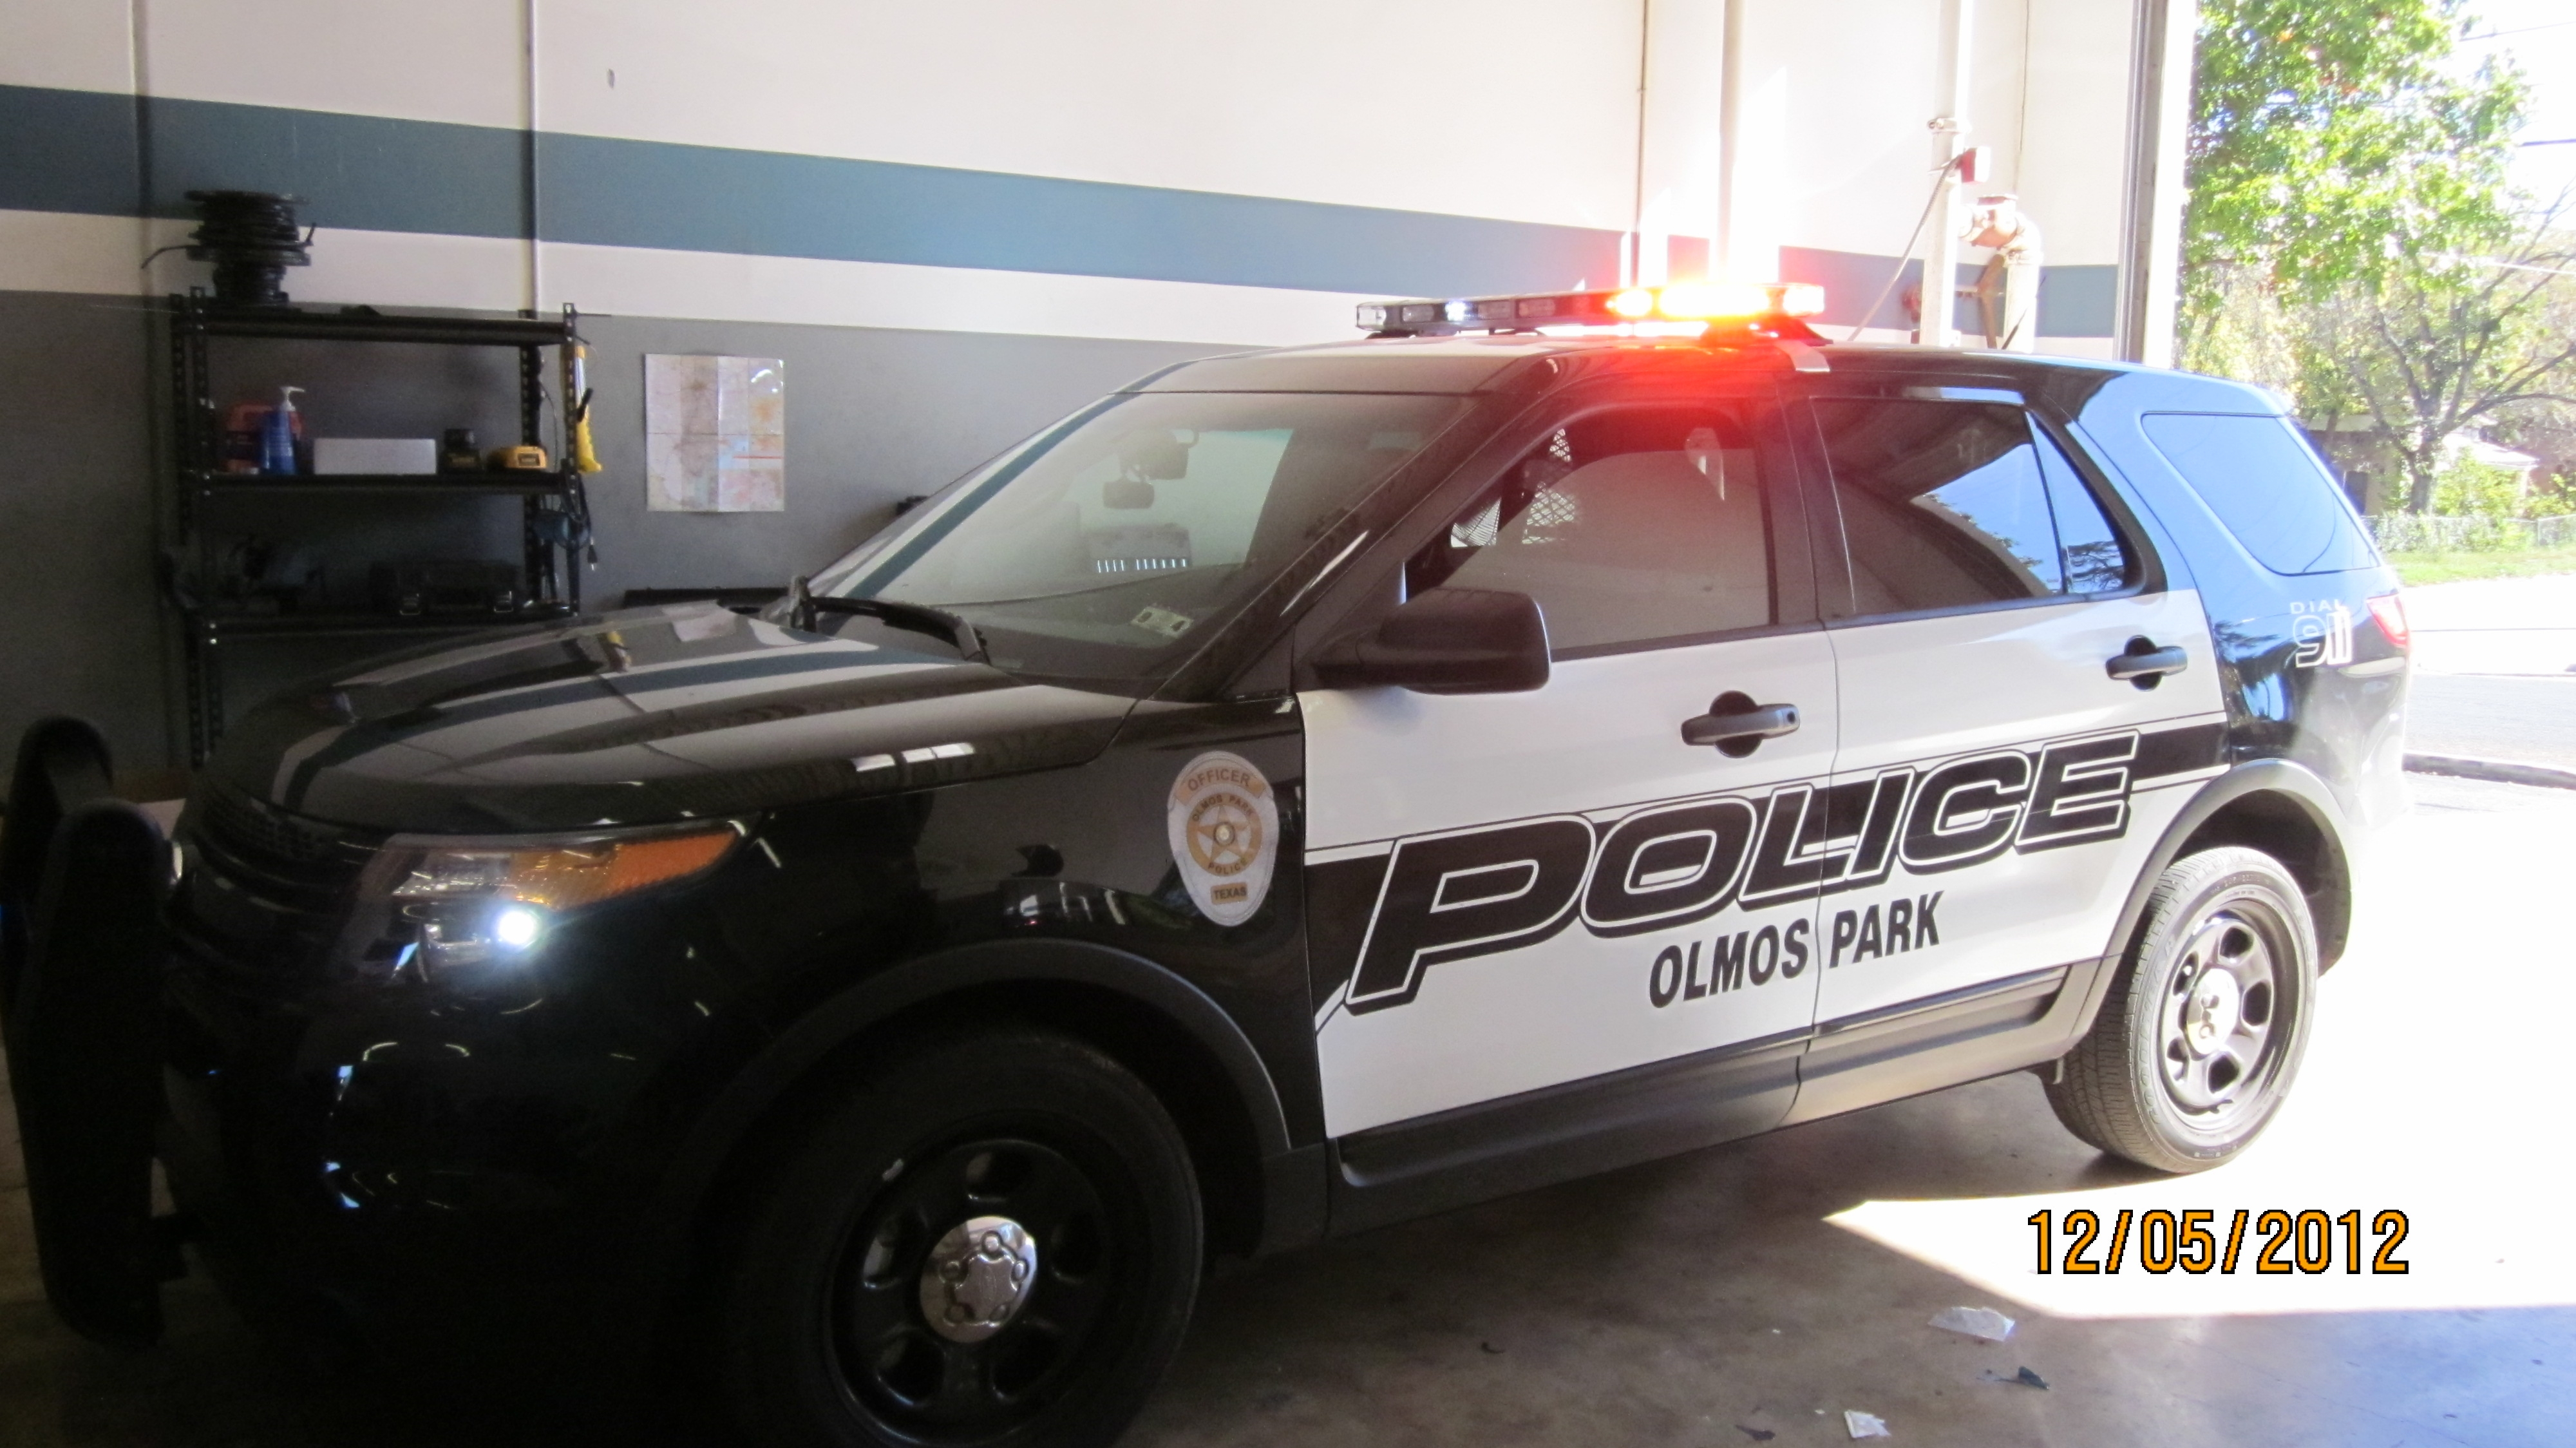 Olmos Park Police Graphics 5